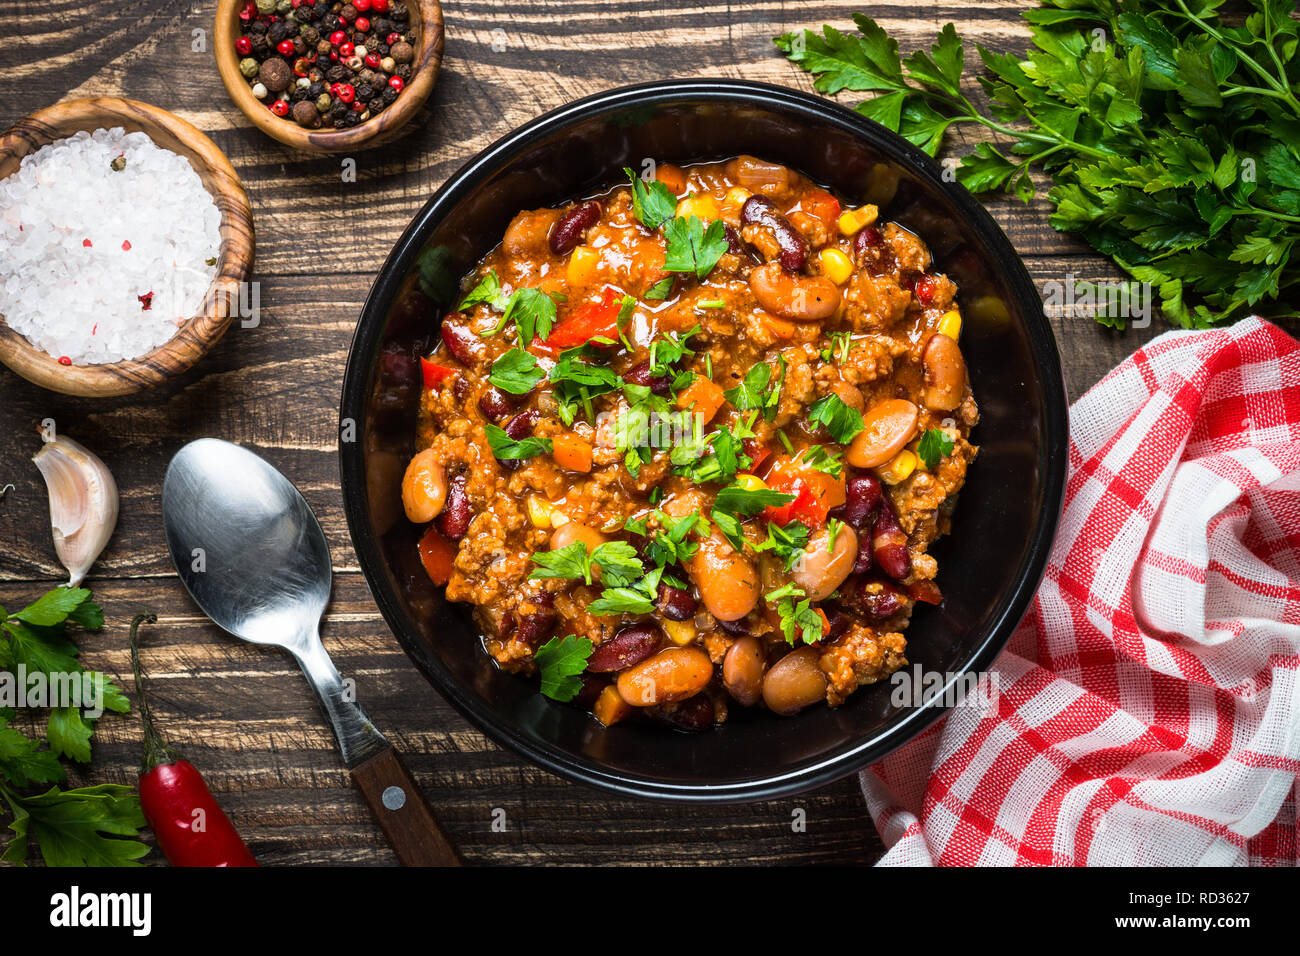 Chili Con Carne From Meat Beans And Vegetables On Dark Wooden Table Traditional Mexican Food Top View Stock Photo Alamy